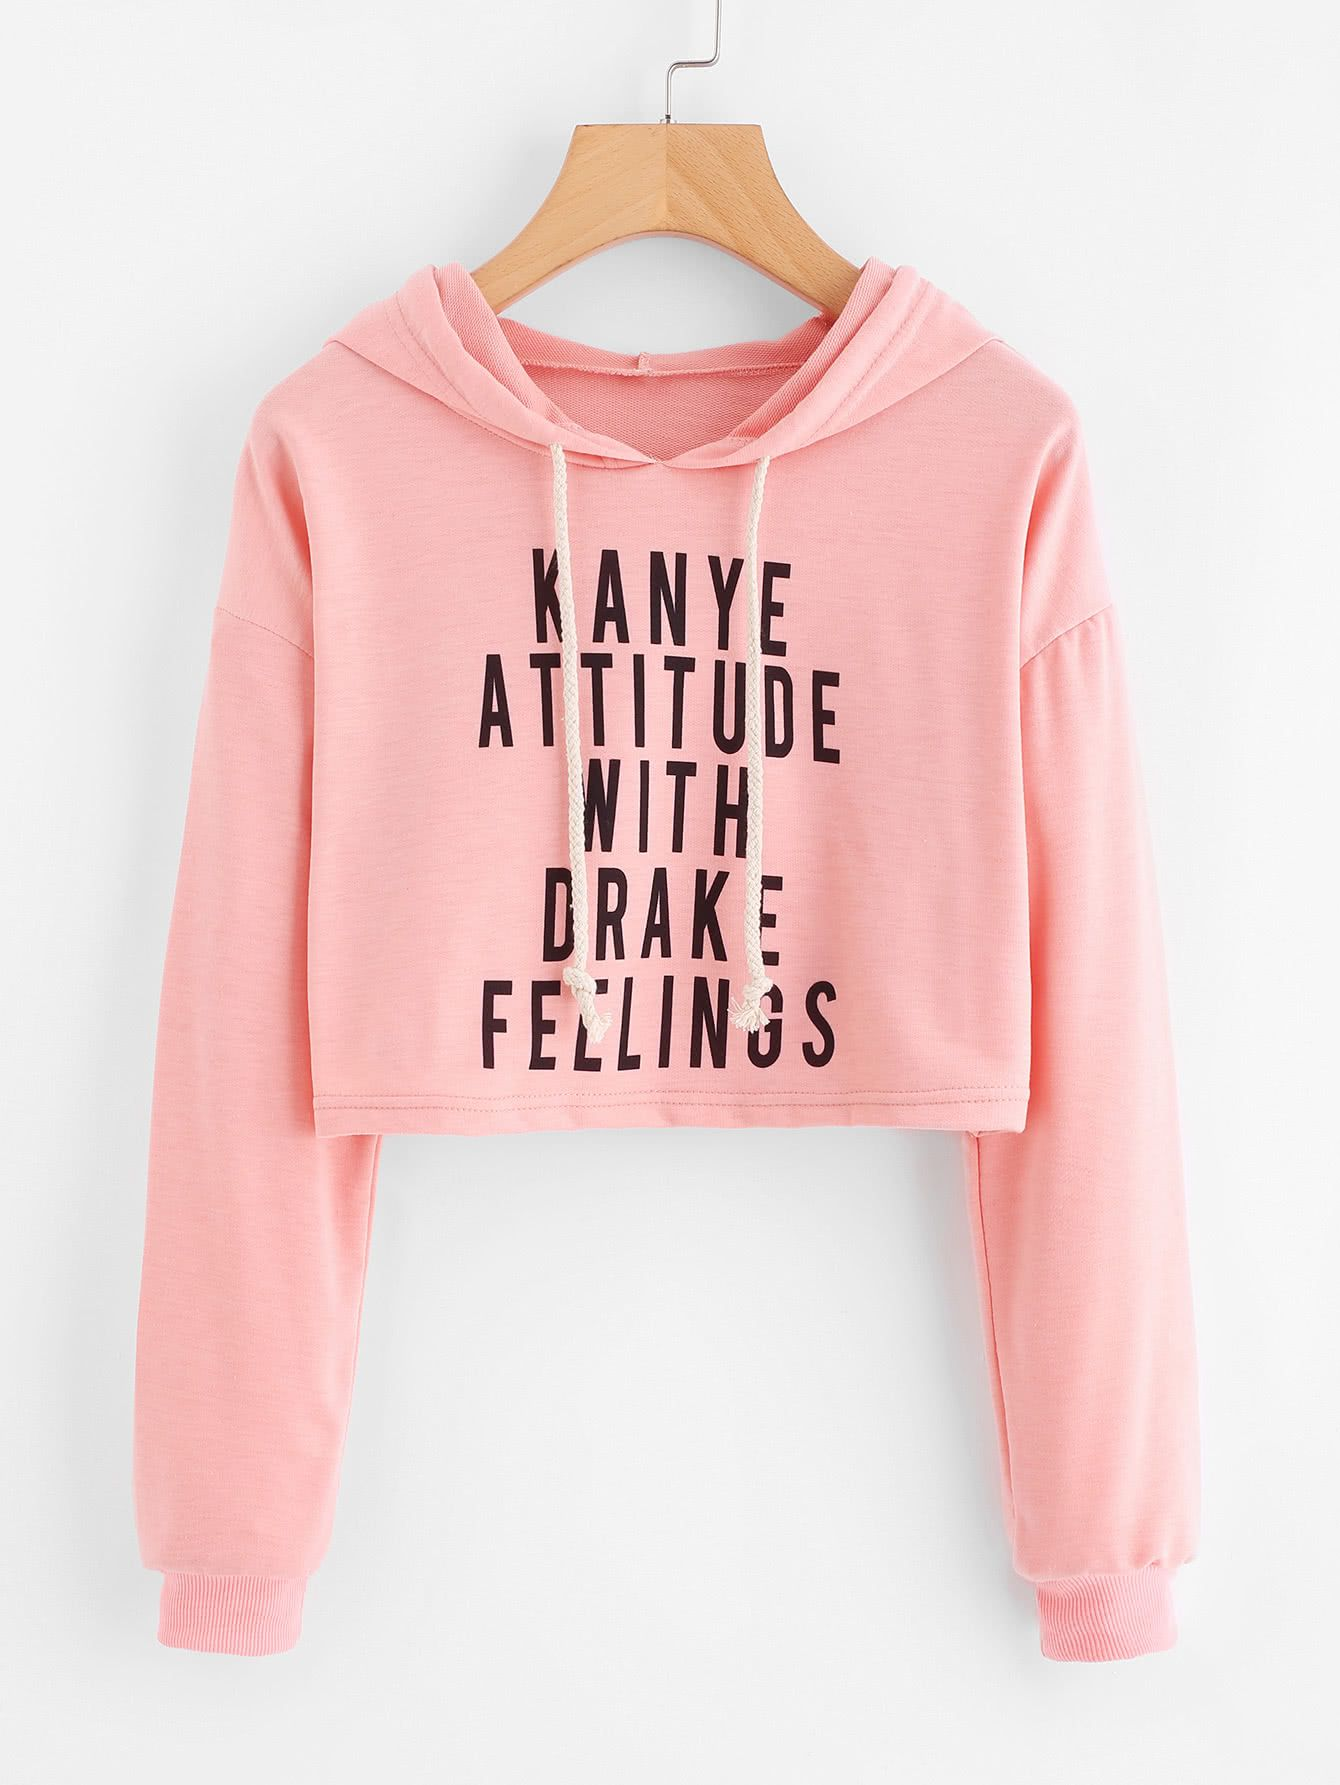 0a141dce137 Drop Shoulder Slogan Print Crop HoodieFor Women-romwe. Drop Shoulder Slogan  Print Crop HoodieFor Women-romwe Crop Top Sweater, Crop Top Hoodie